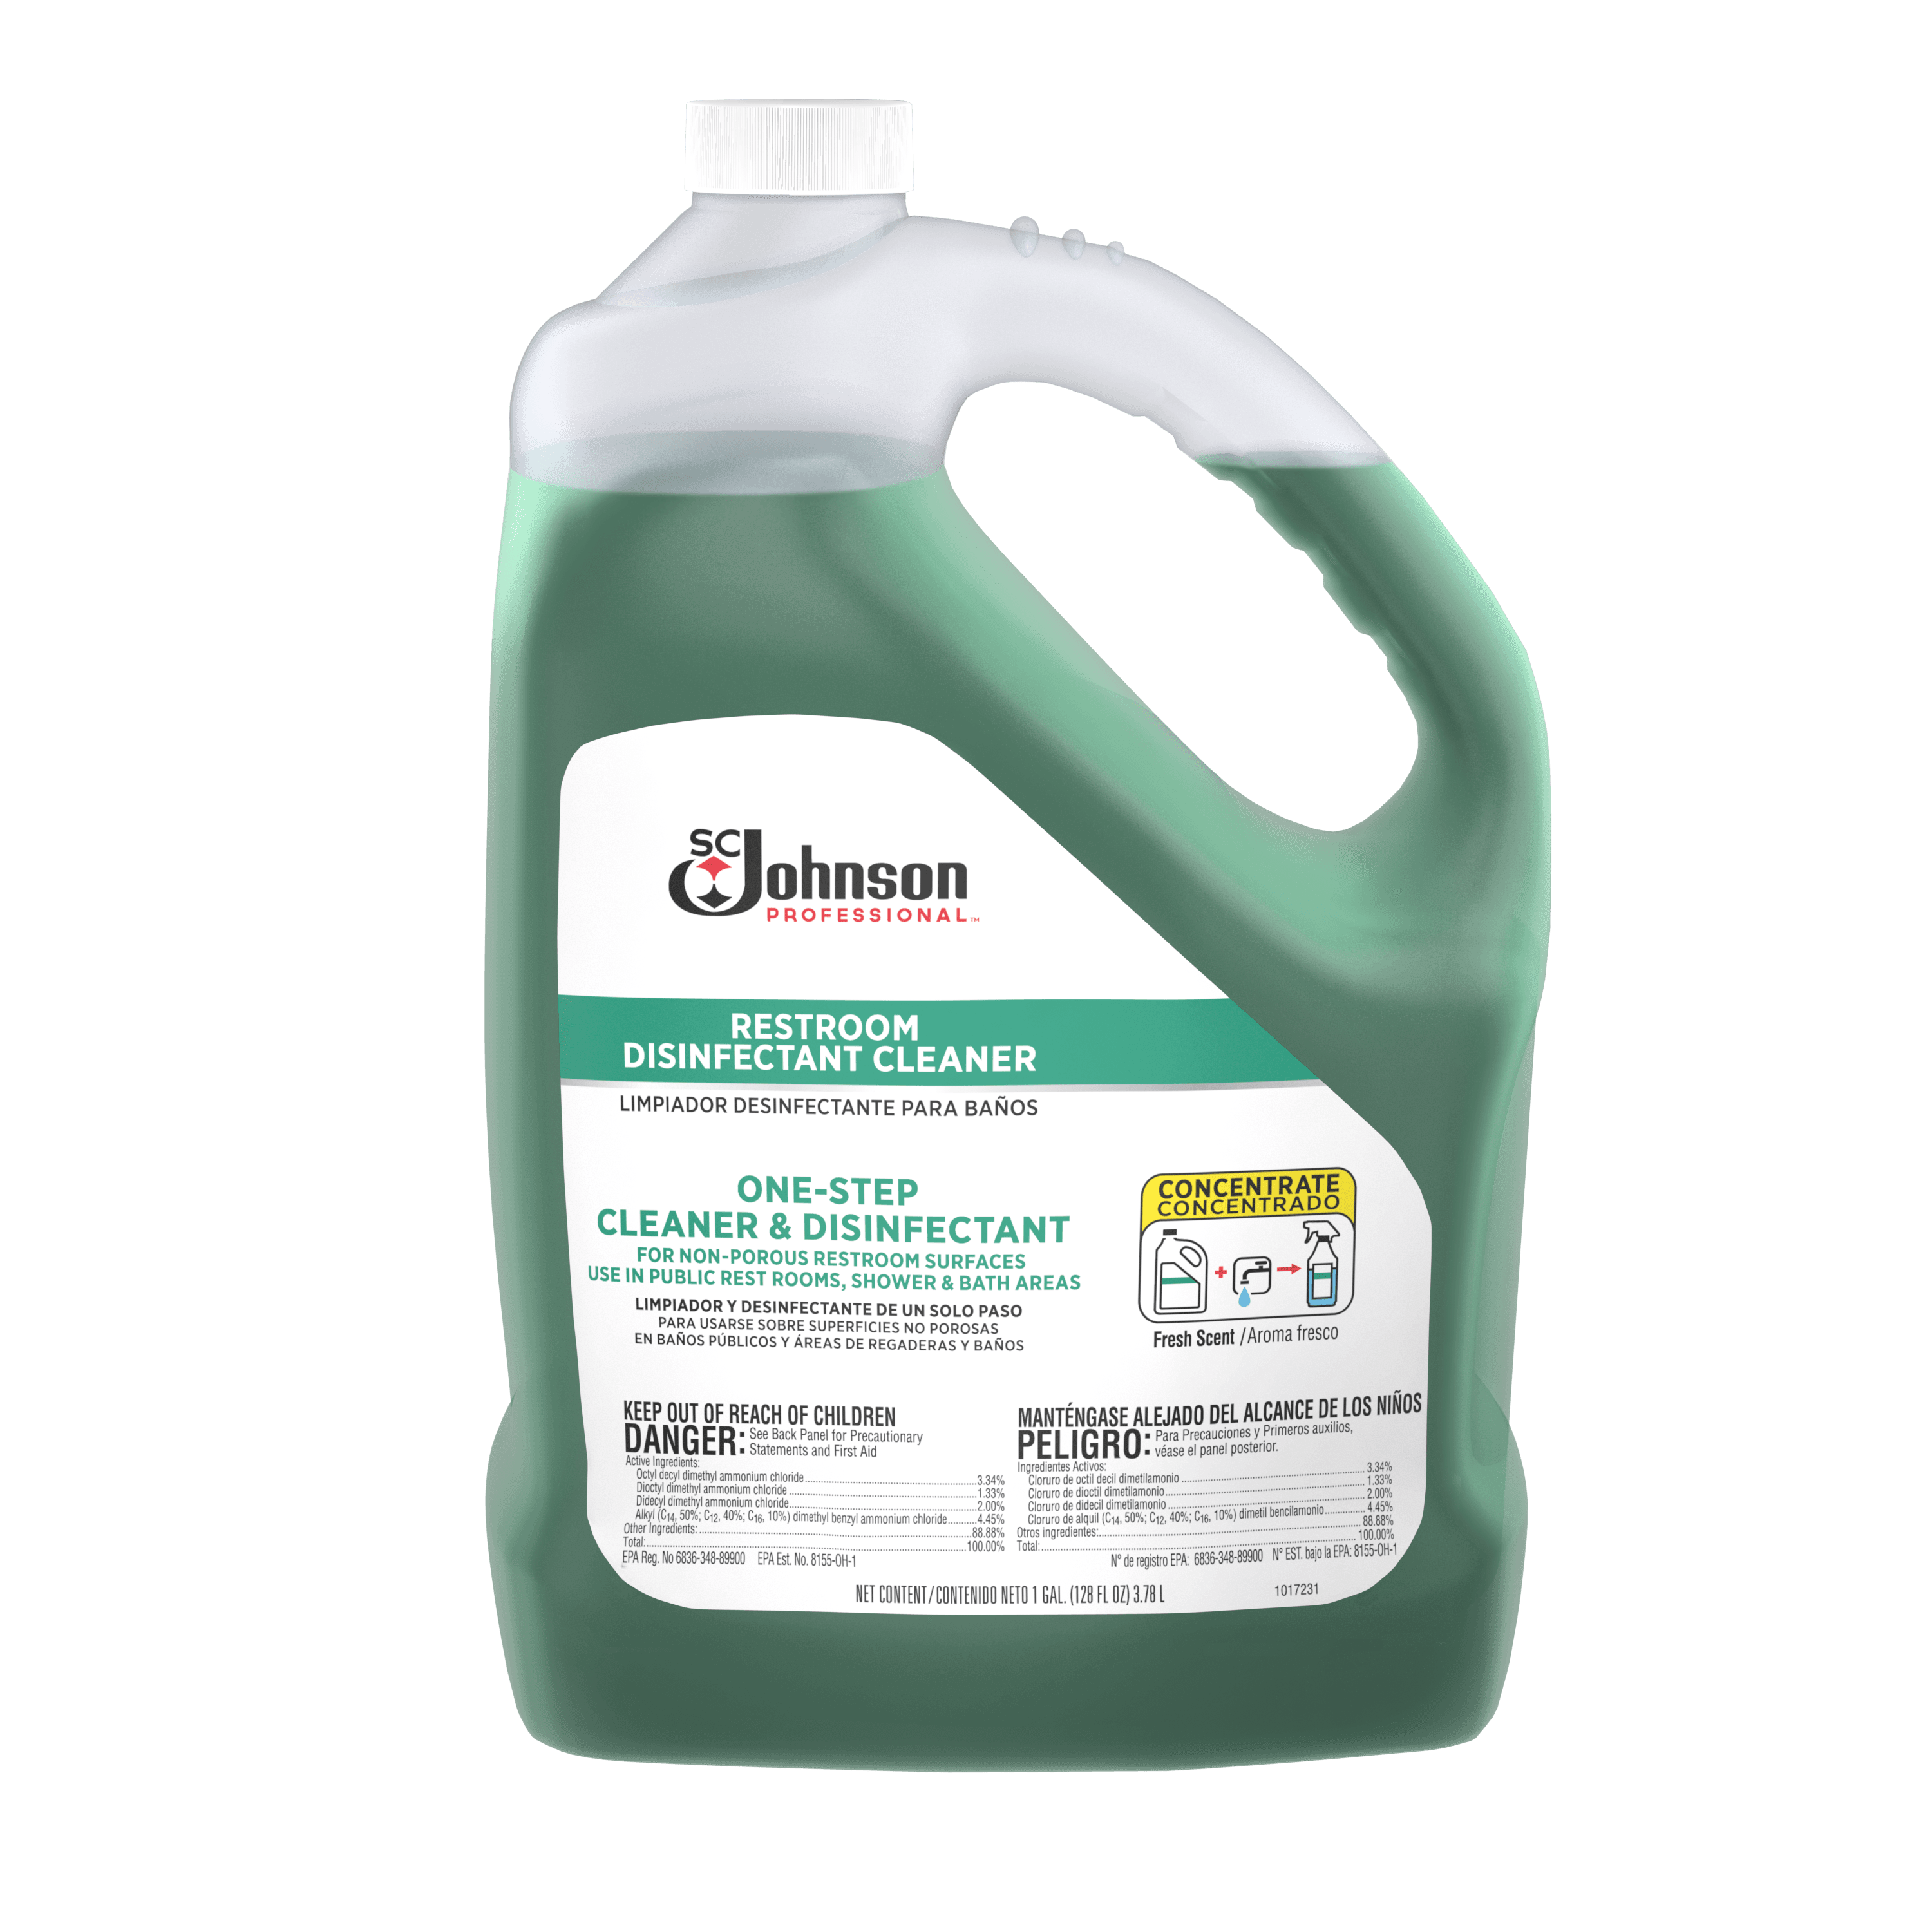 SC JOHNSON PROFESSIONAL RESTROOM DISINFECTANT CLEANERS